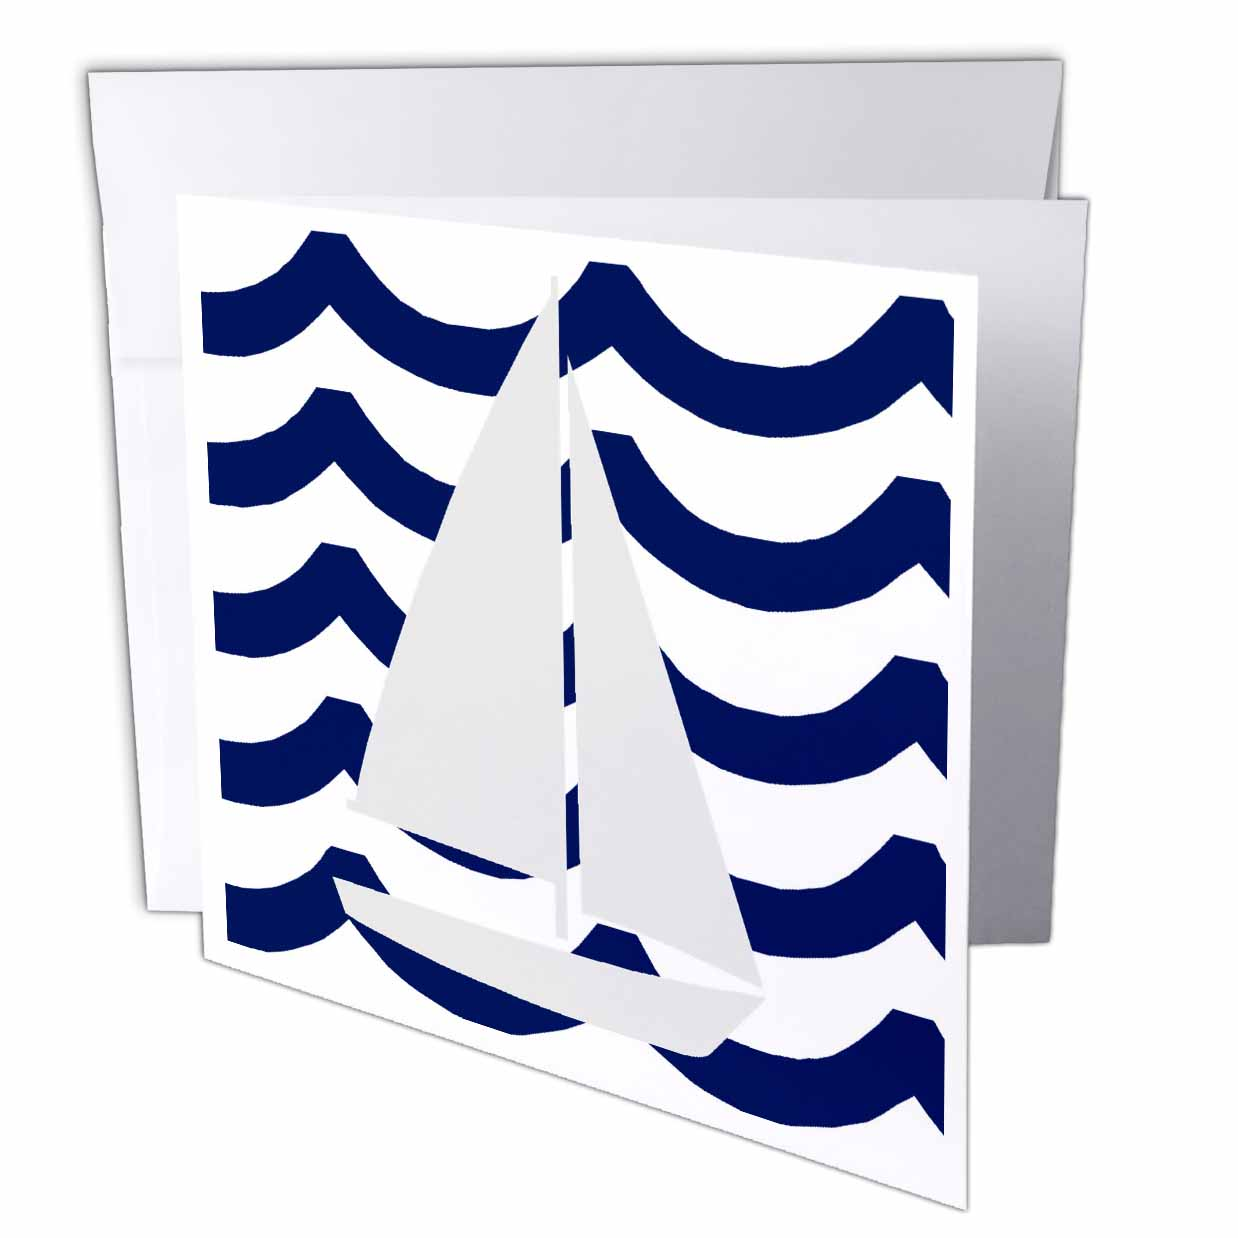 3dRose White Toy Sailboat On Blue Waves, Greeting Cards, 6 x 6 inches, set of 6 by 3dRose